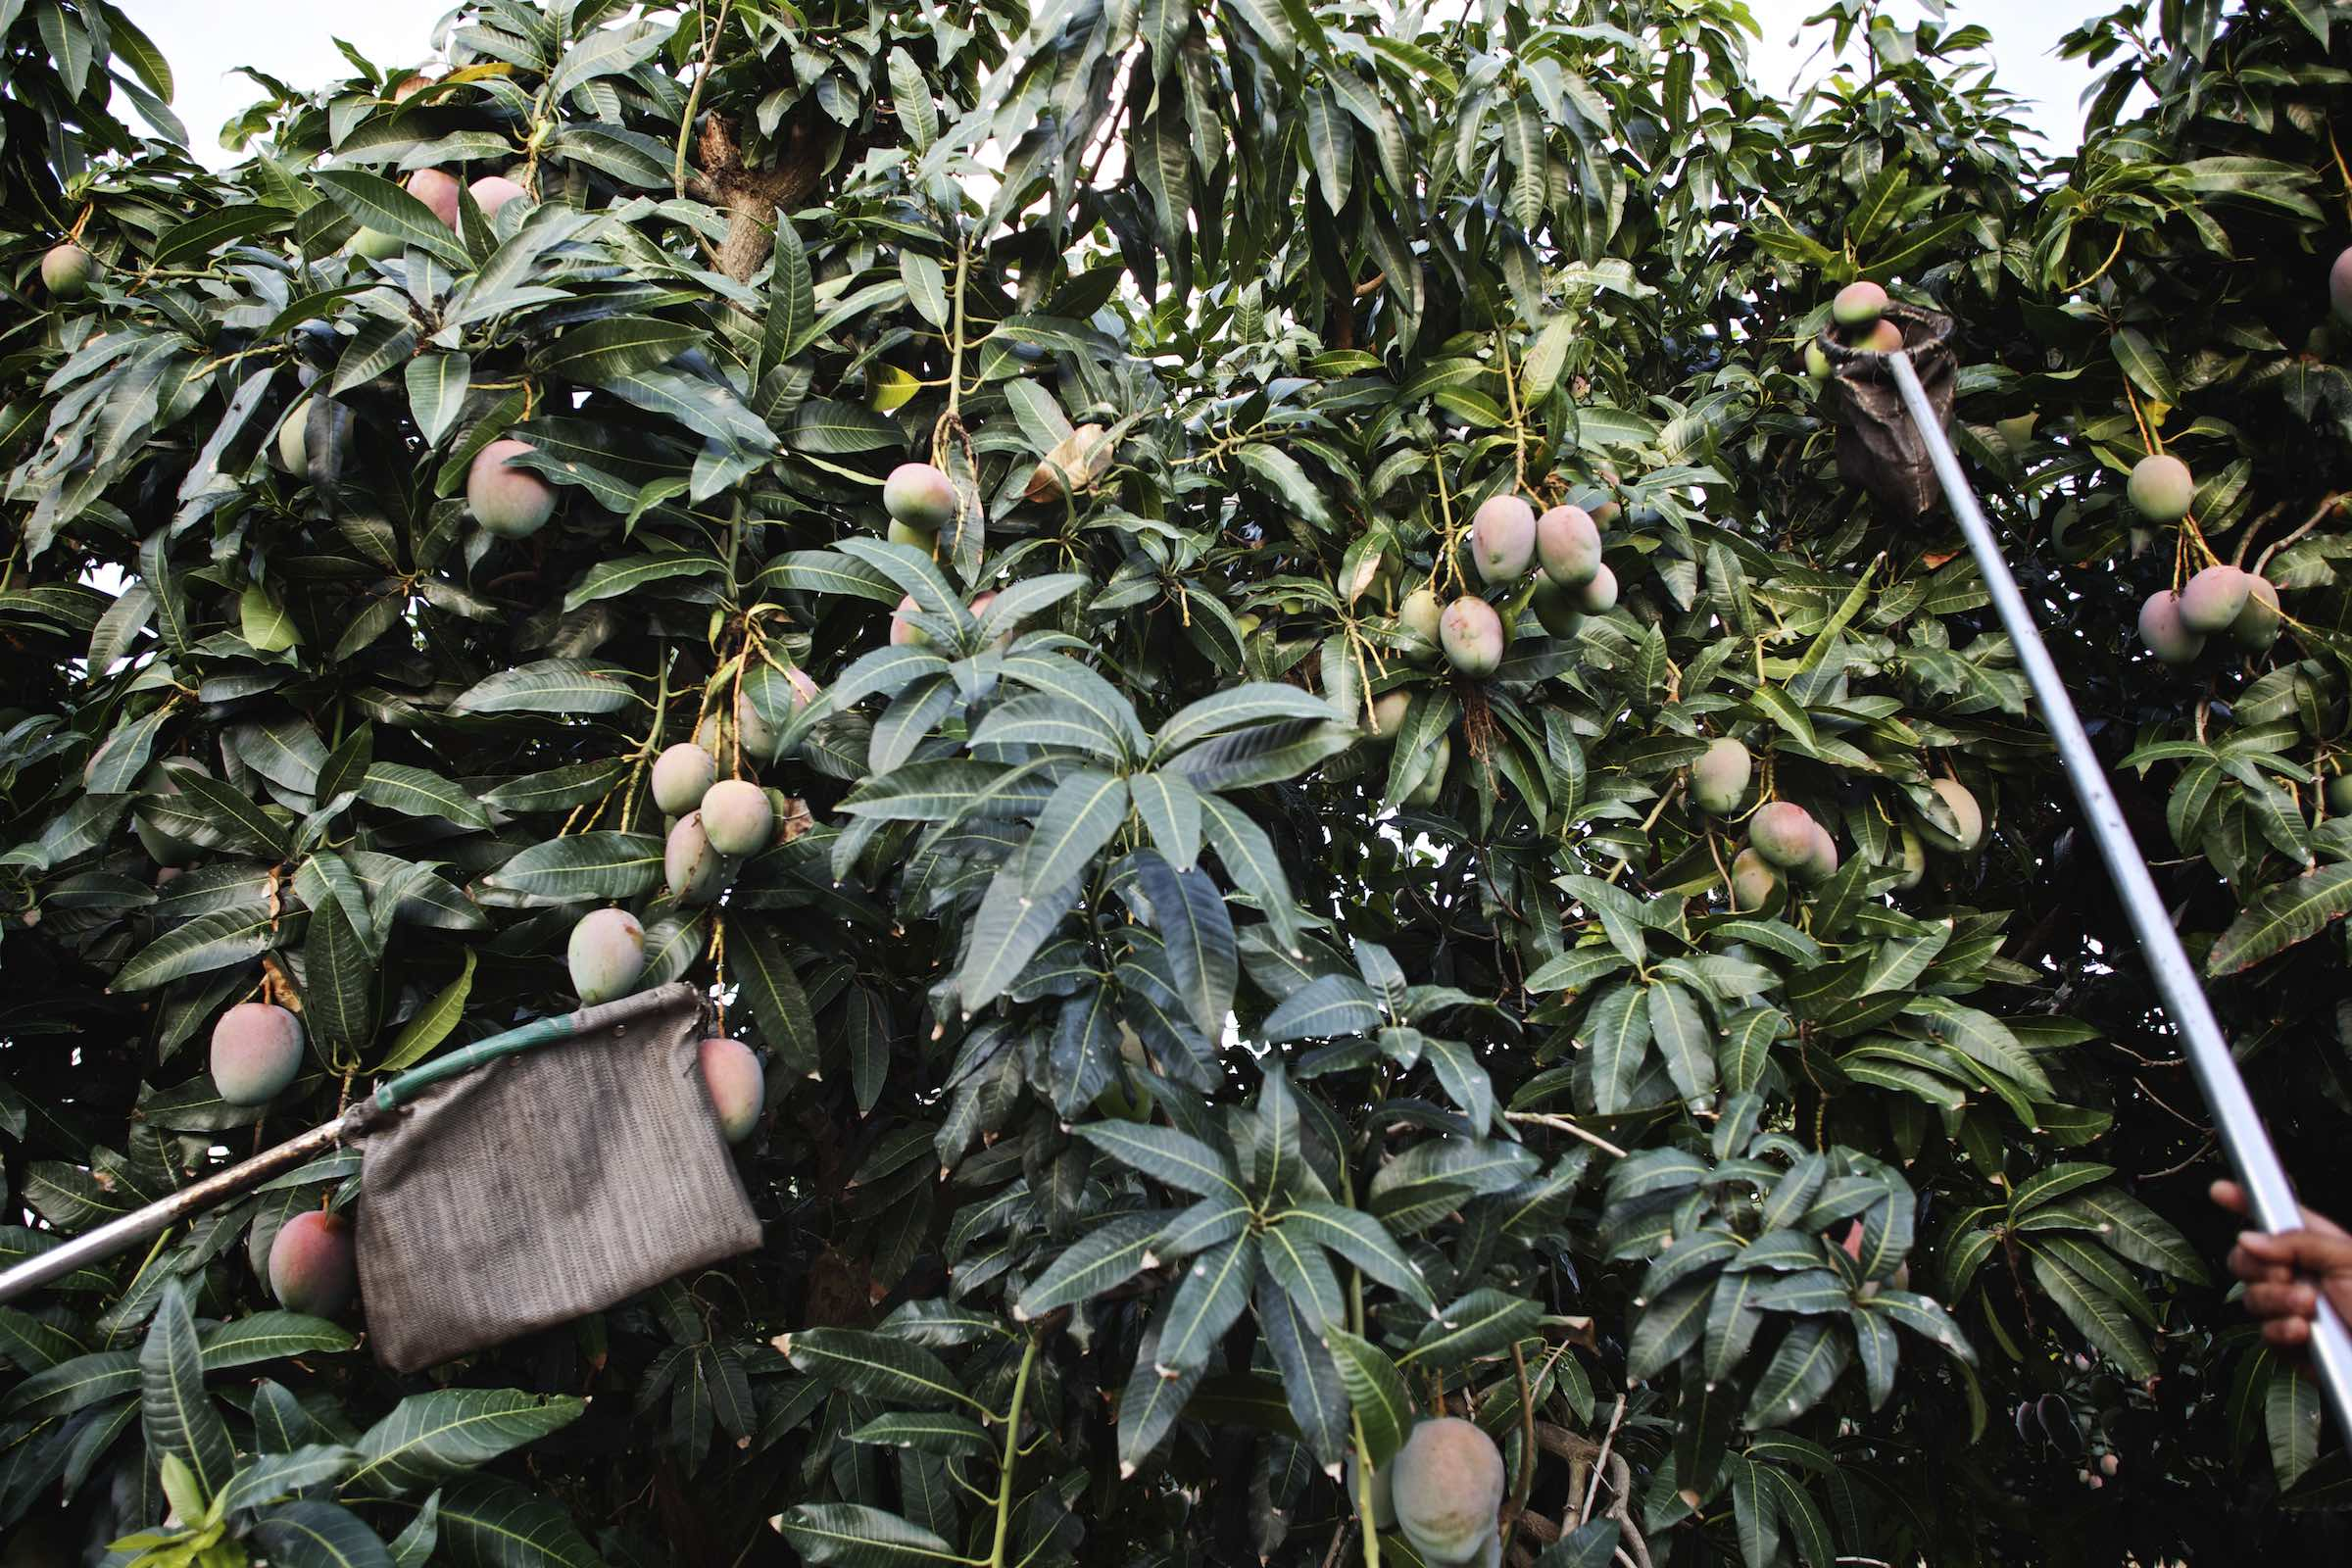 Mangos being picked for harvest.